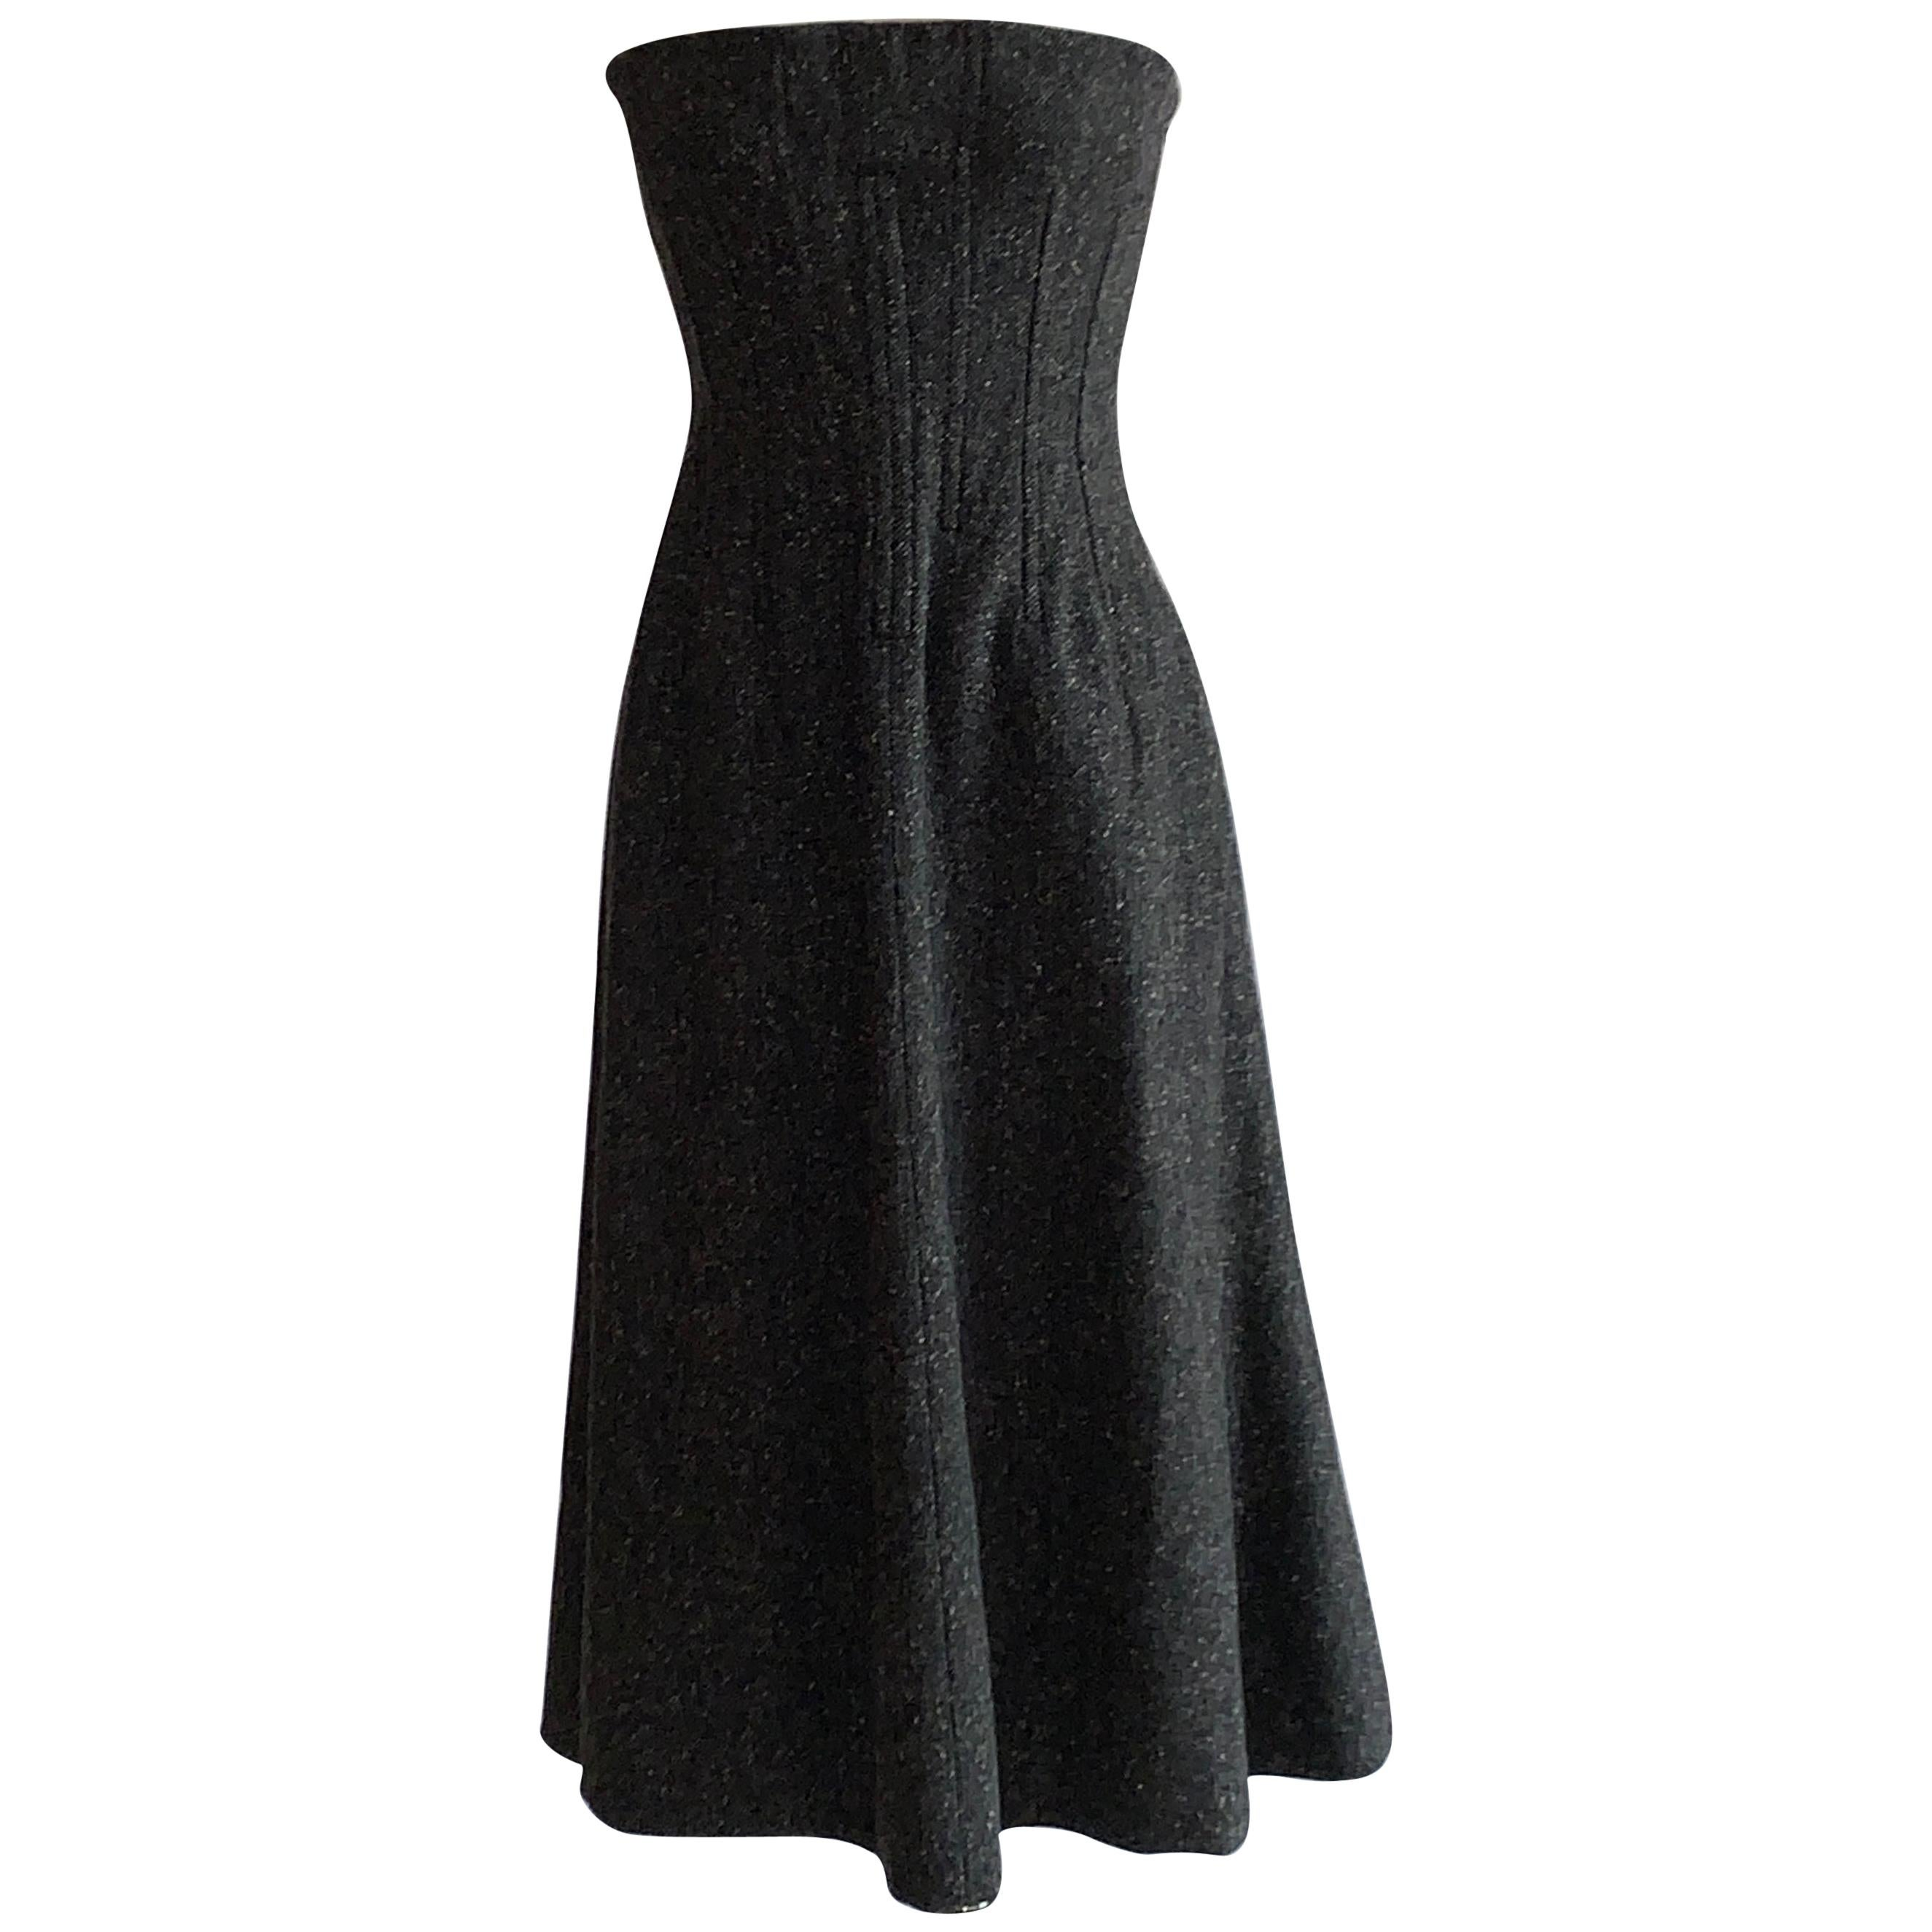 Dolce & Gabbana Grey Tweed Lace Up Corset Back Strapless Flared Dress